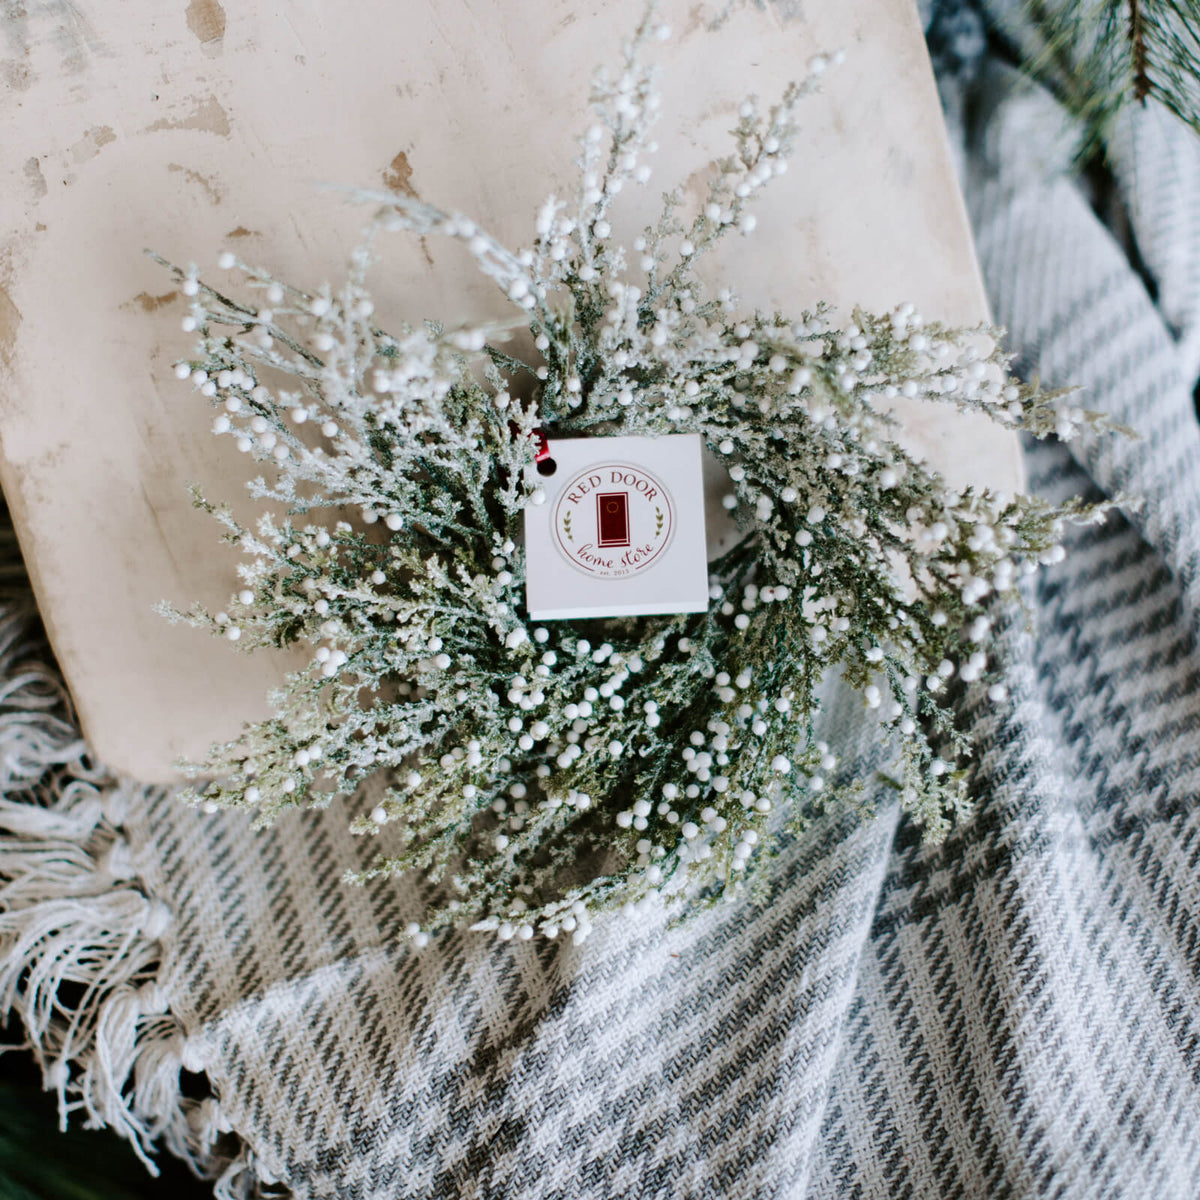 A small 3 inch diameter faux frosted berry wreath with snow covered cedar branches and lots of tiny white berries rest on a plaid blanket for holiday decorating